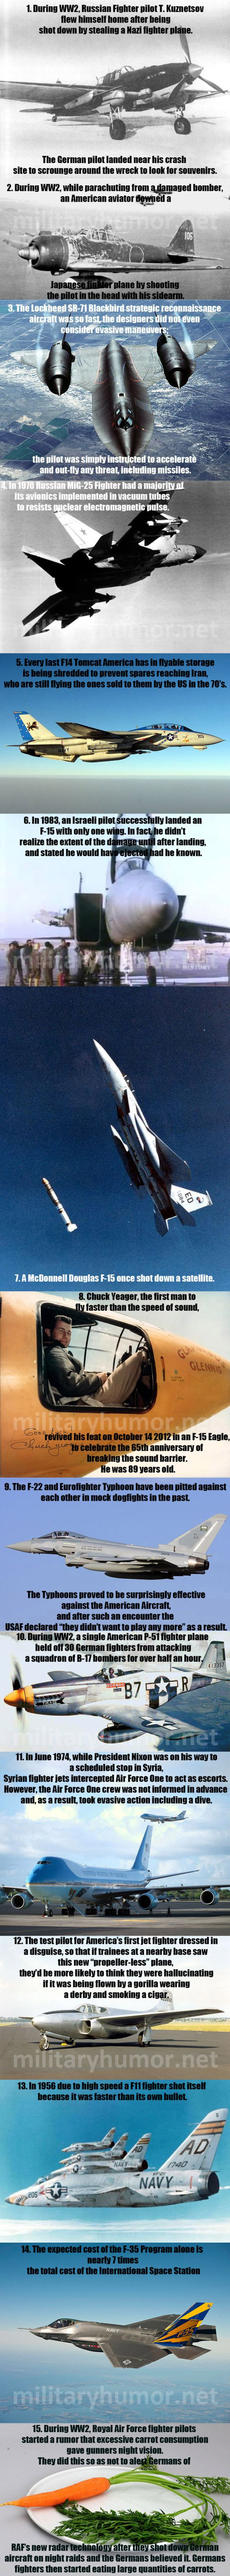 15 Awesome and Interesting Facts About Military Aircraft - Military humor